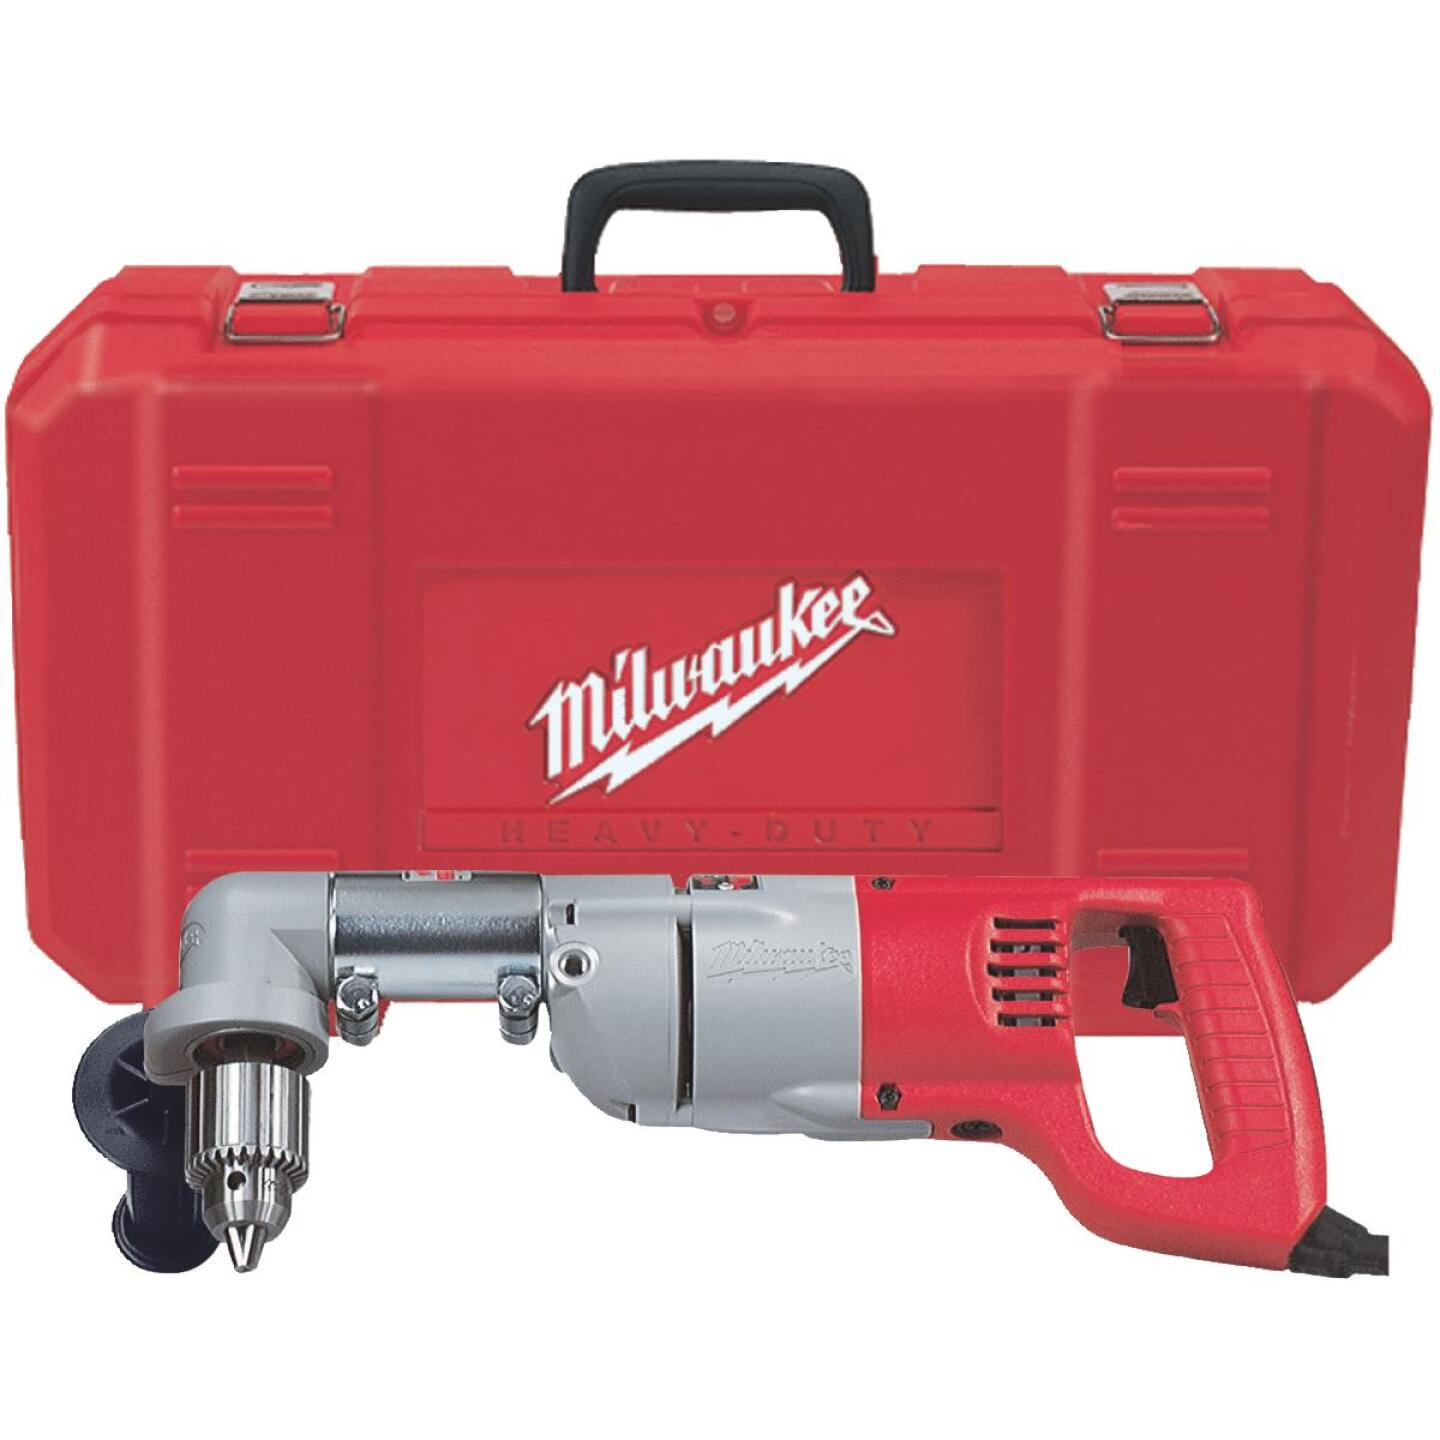 Milwaukee 1/2 In. 7-Amp Keyed D-Handle Electric Angle Drill Kit Image 2